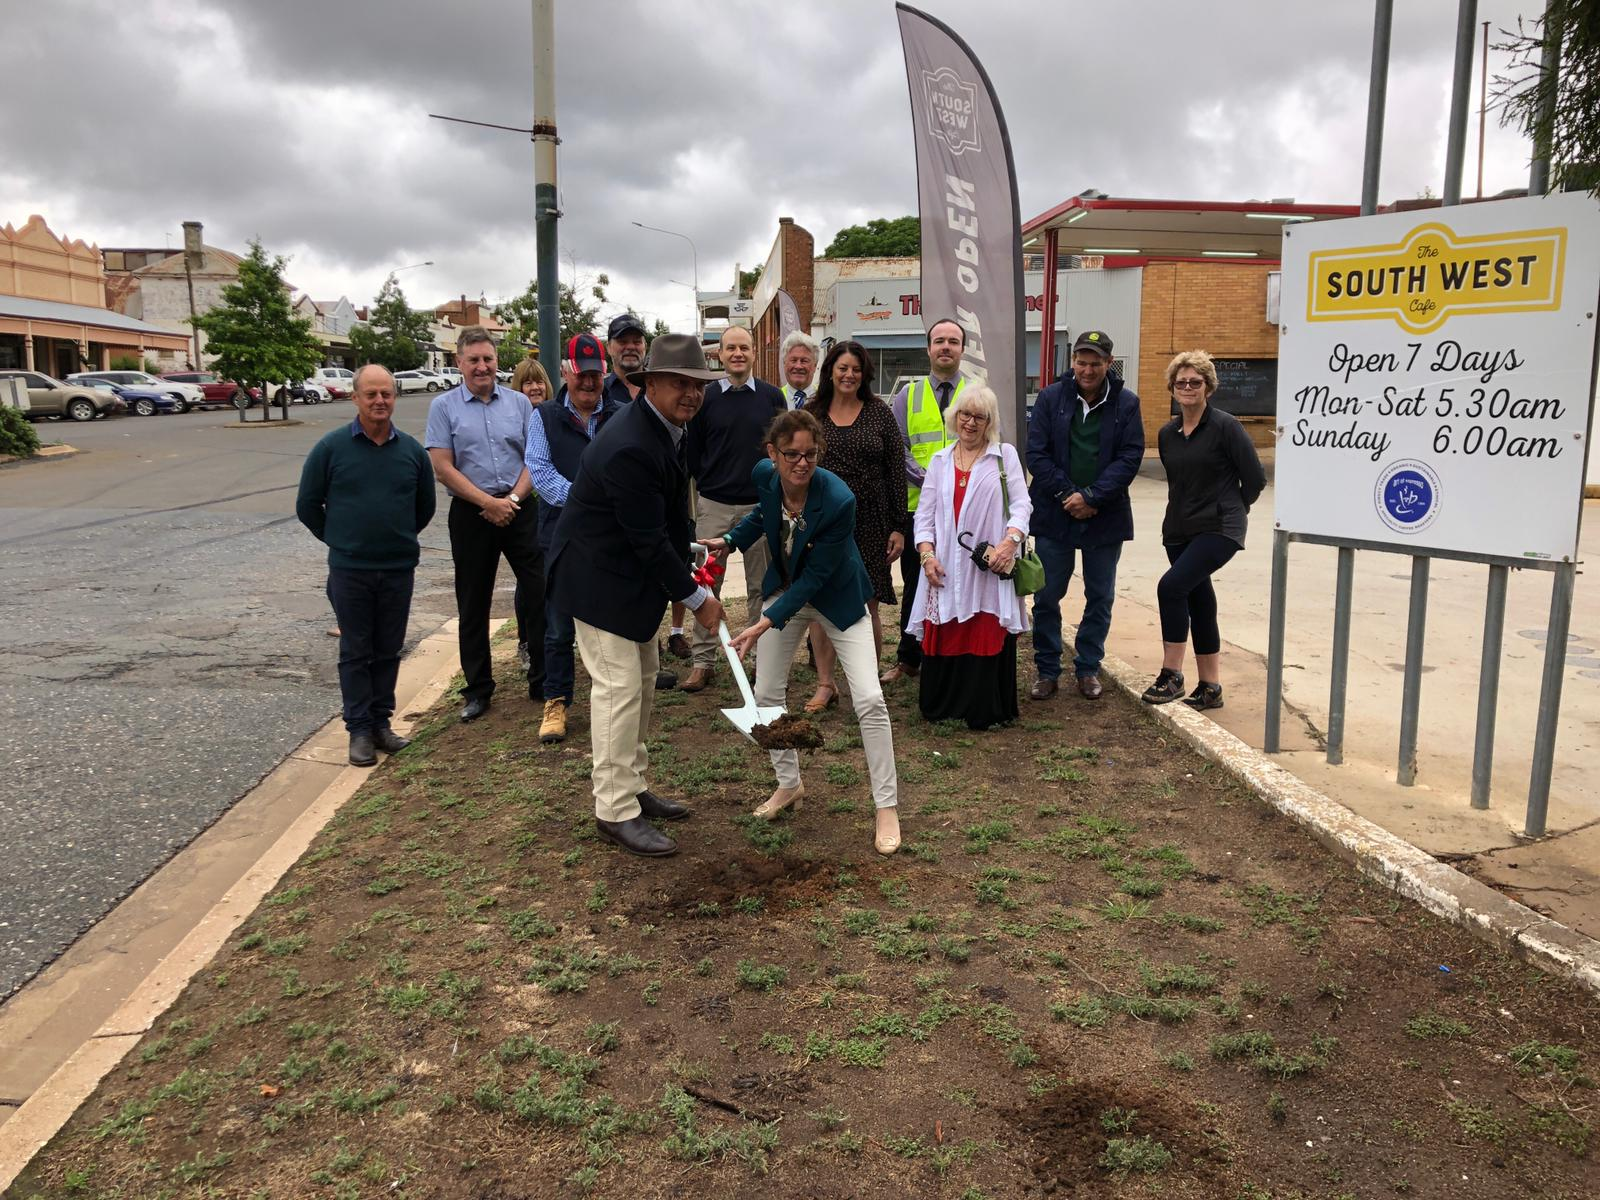 Cr Mark Liebich and Steph Cooke MP lift a shovel with earth together. People stand behind them looking on.